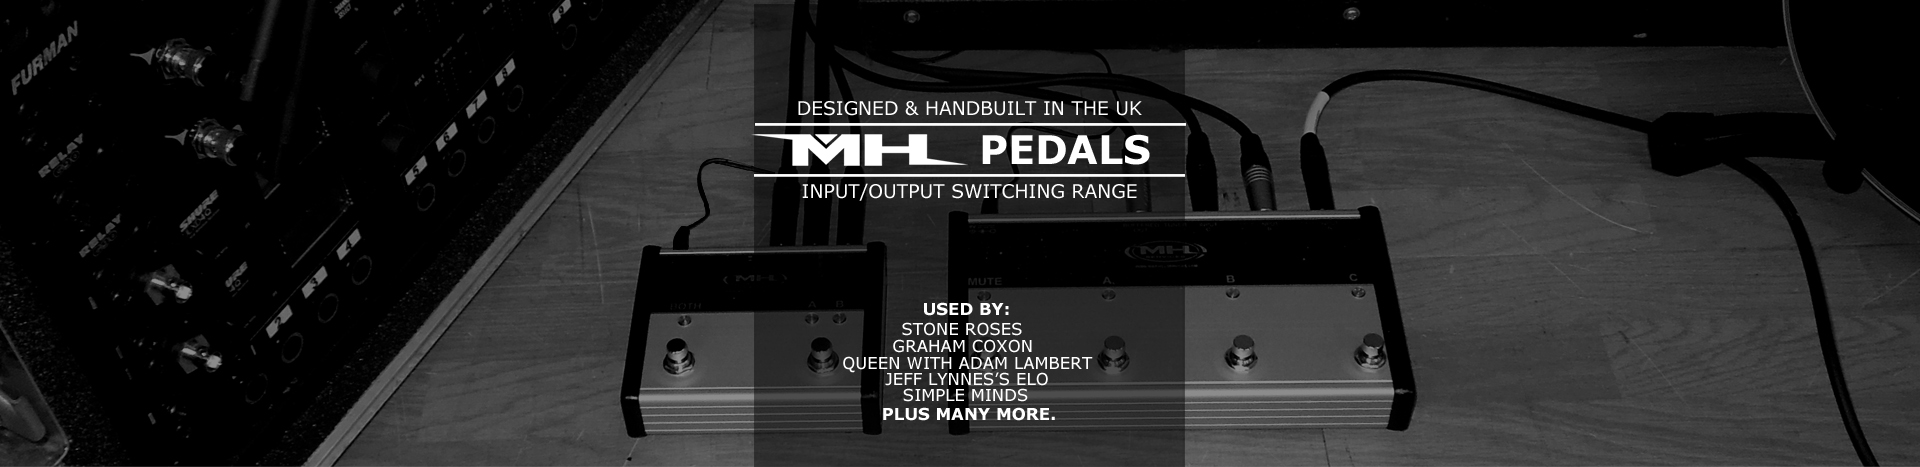 MH Pedals Banner